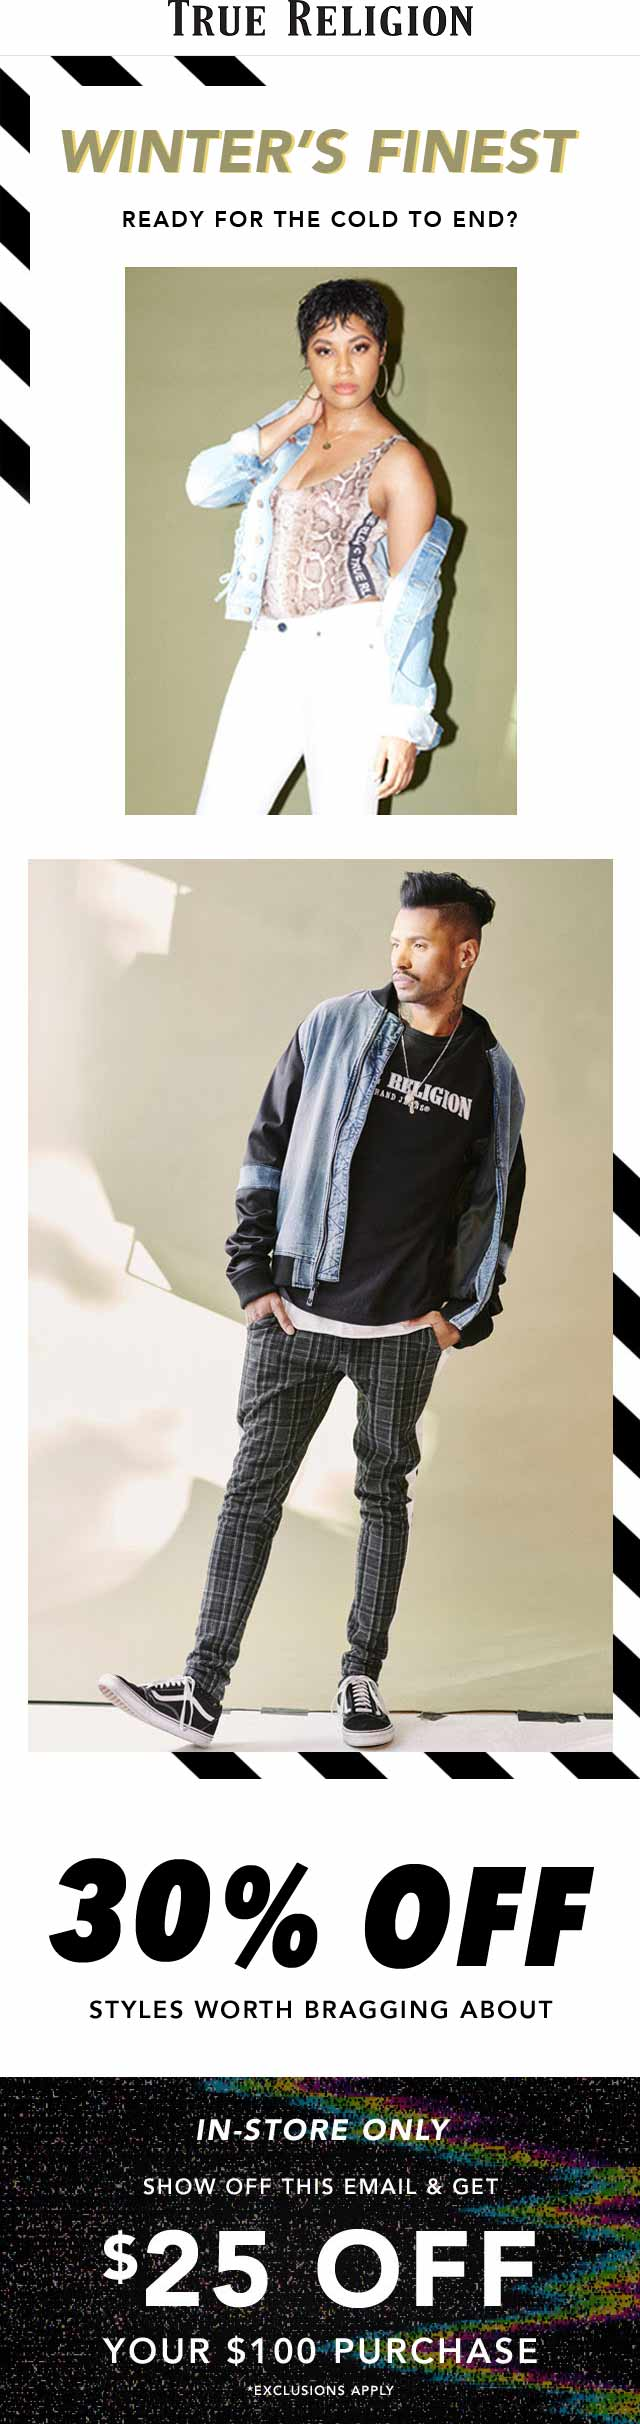 True Religion Coupon January 2020 $25 off $100 at True Religion